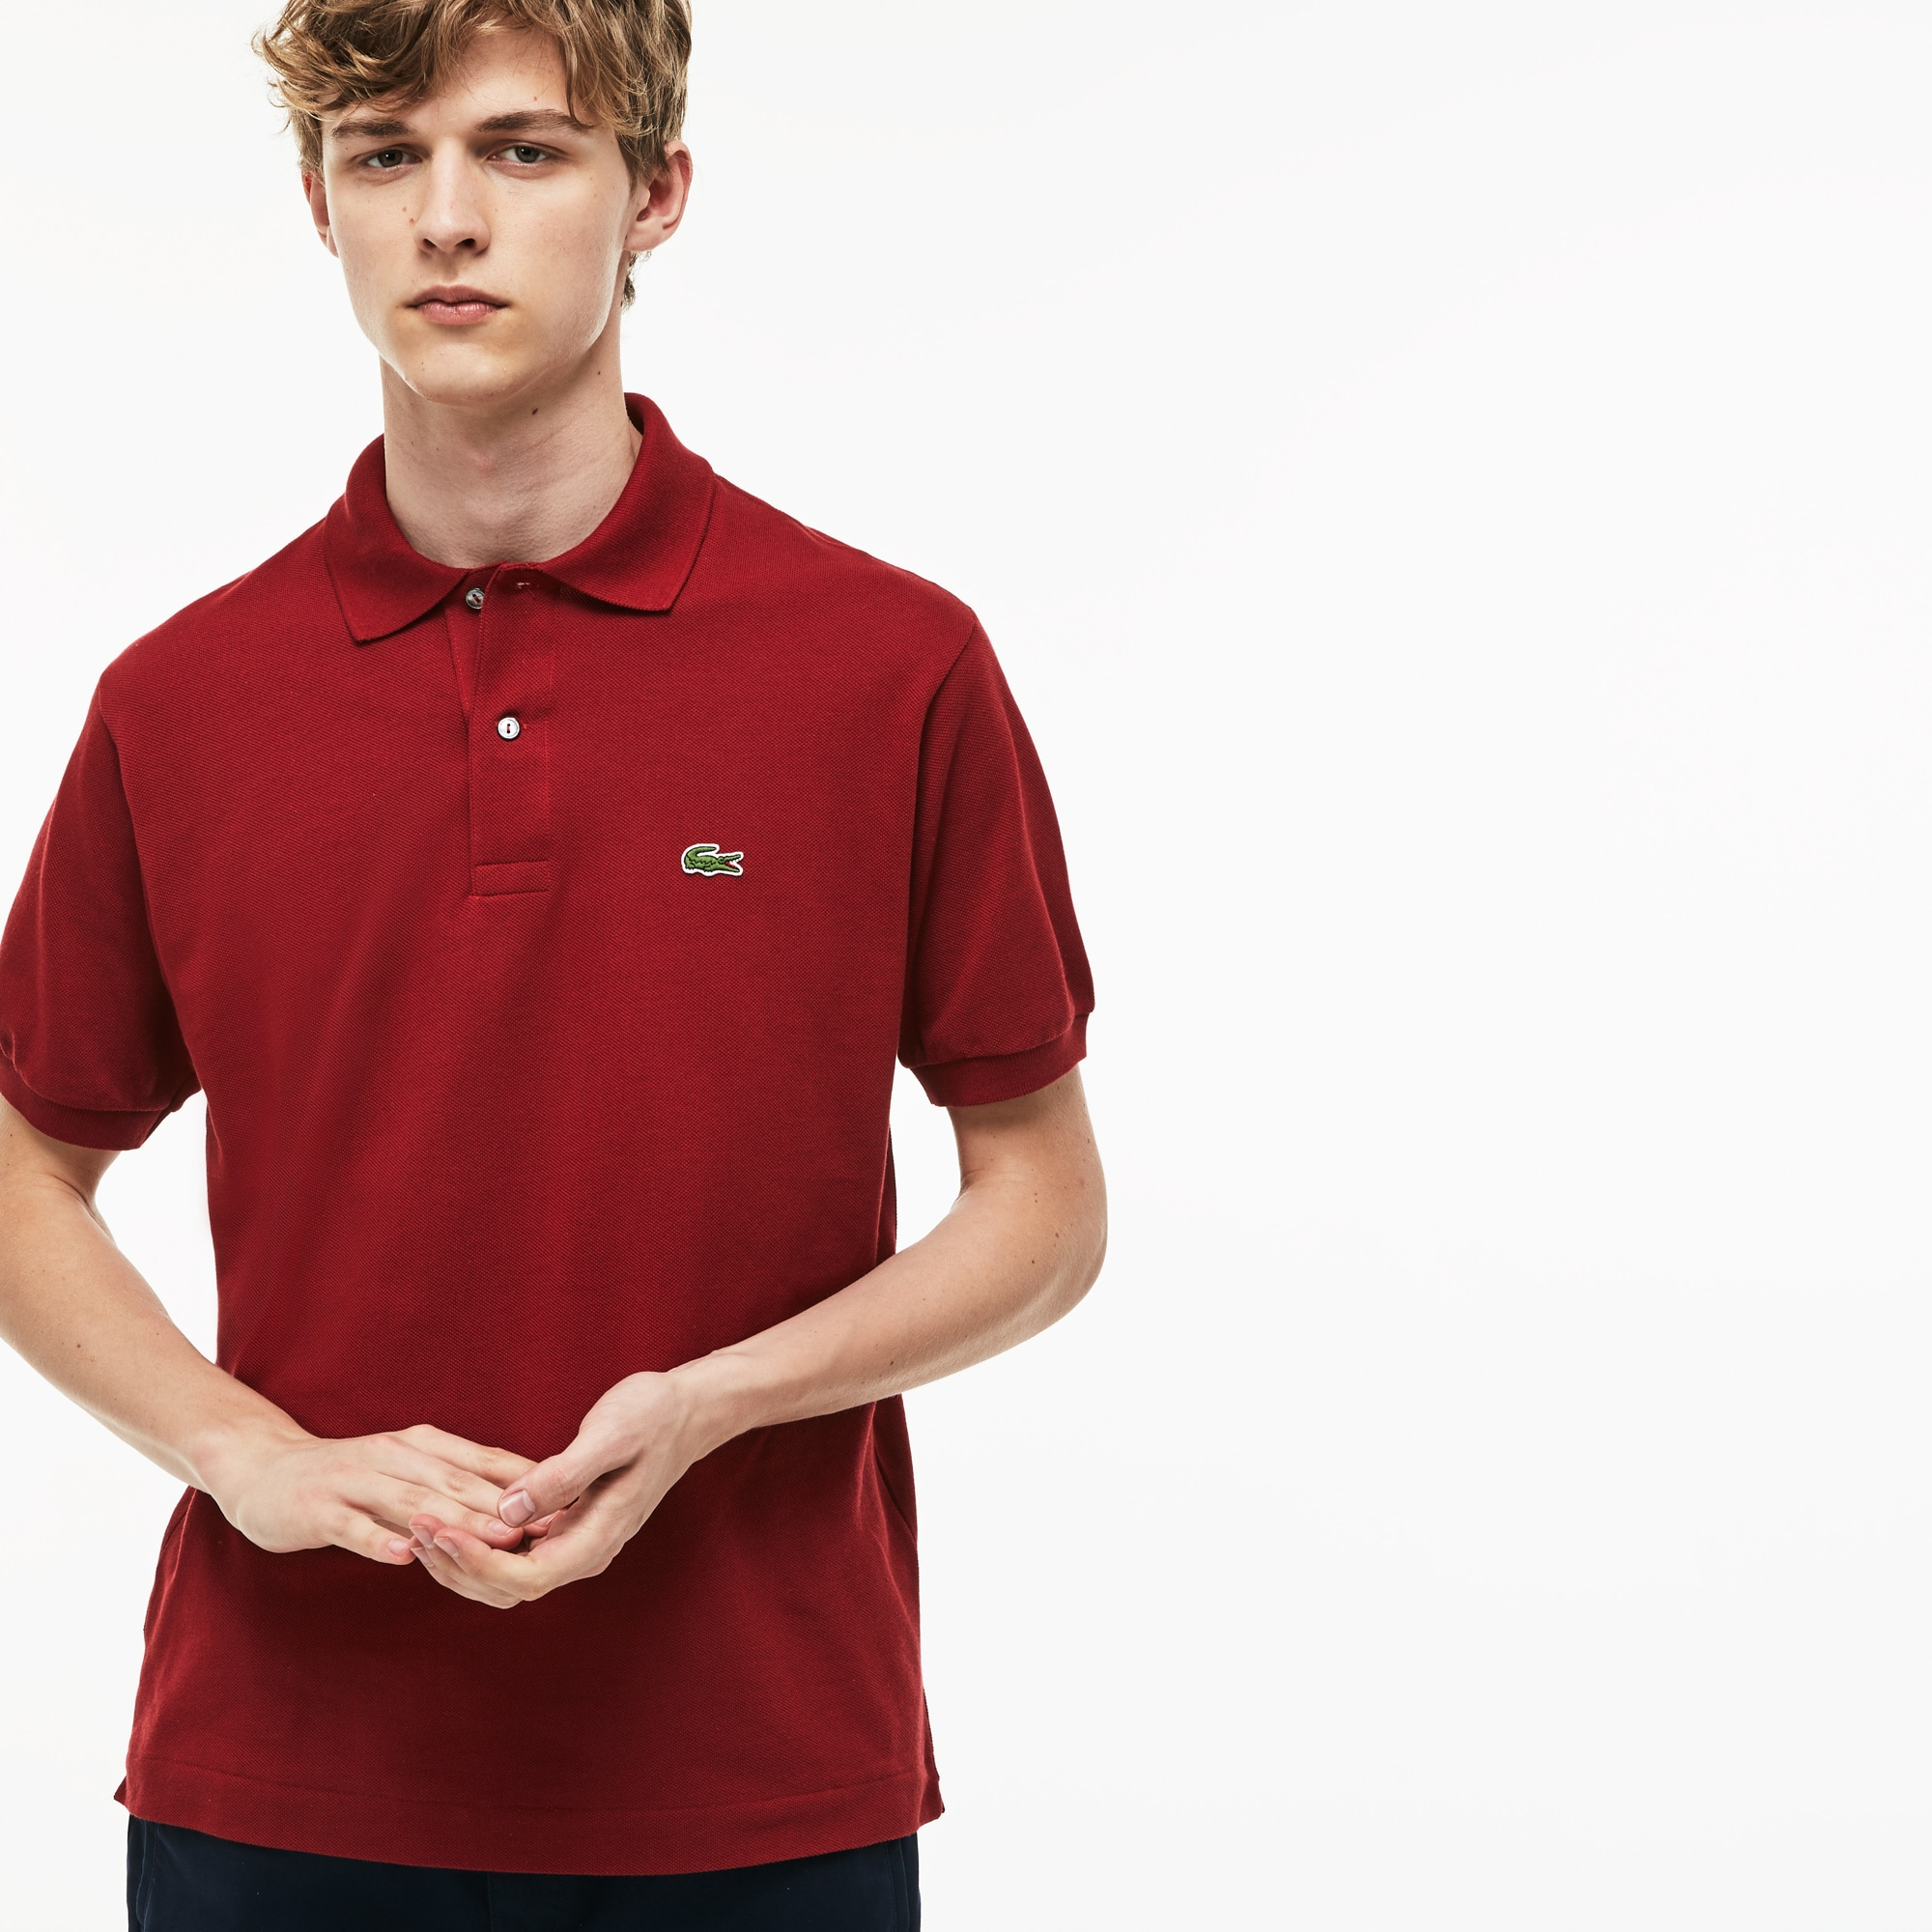 cdb2205a9 Lacoste Classic Fit L.12.12 Polo Shirt